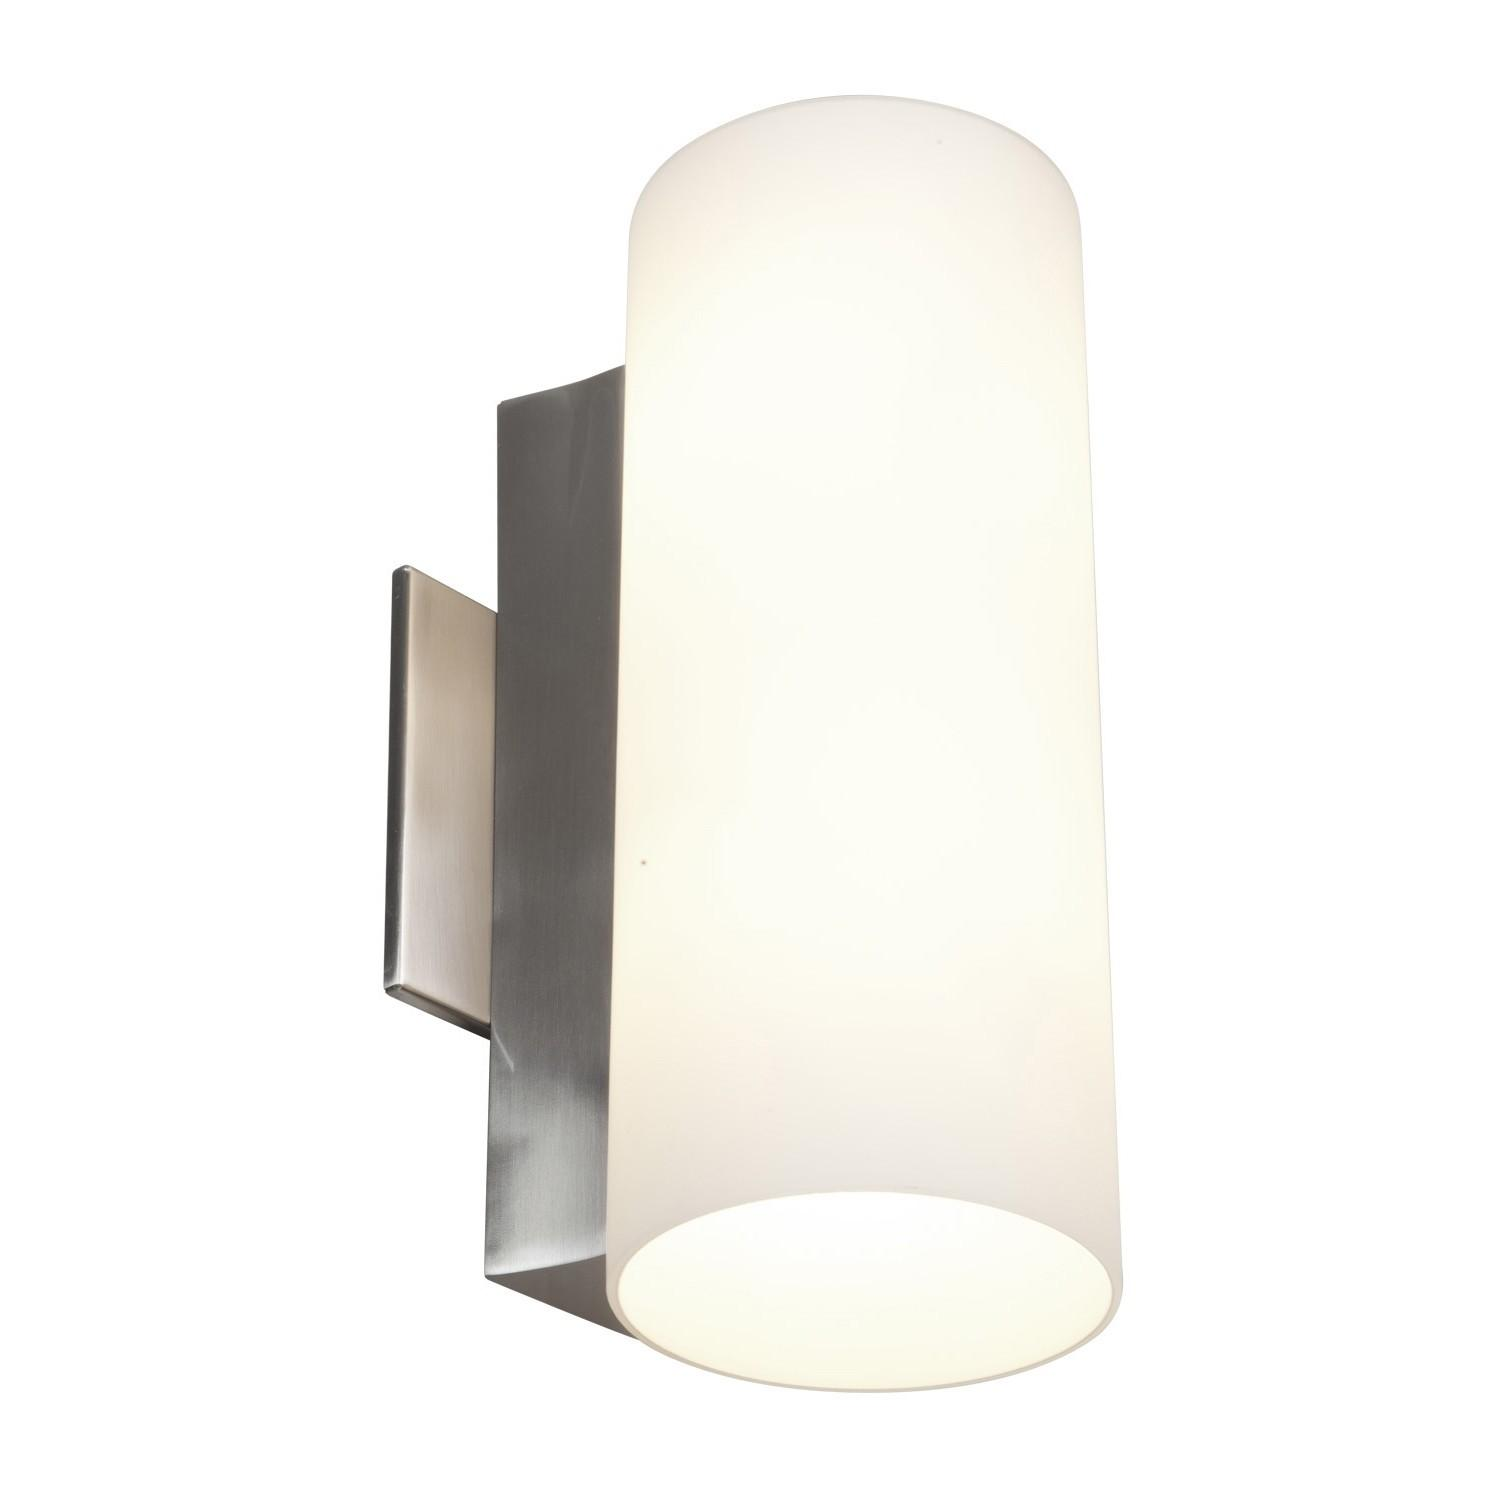 Stainless Steel Wall Mounted Sconce Light Fixtures